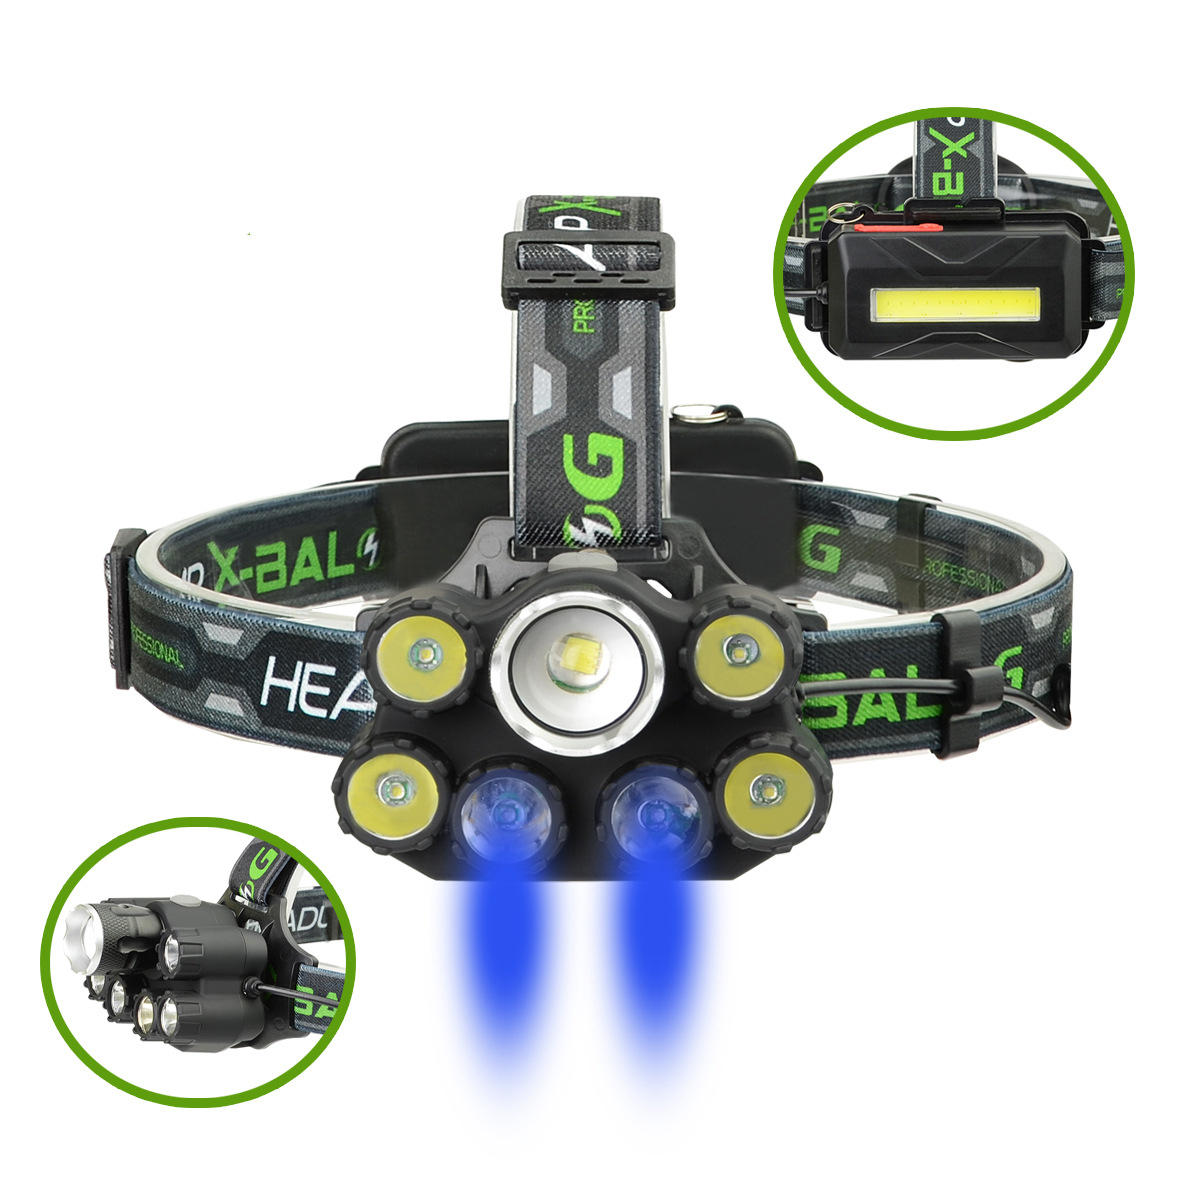 Nitecore NU32 550LM XP-G3 S3 LED Headlamp Lightweight 330h Max Runtime IP67 Built In Rechargeable Battery USB Port - 1